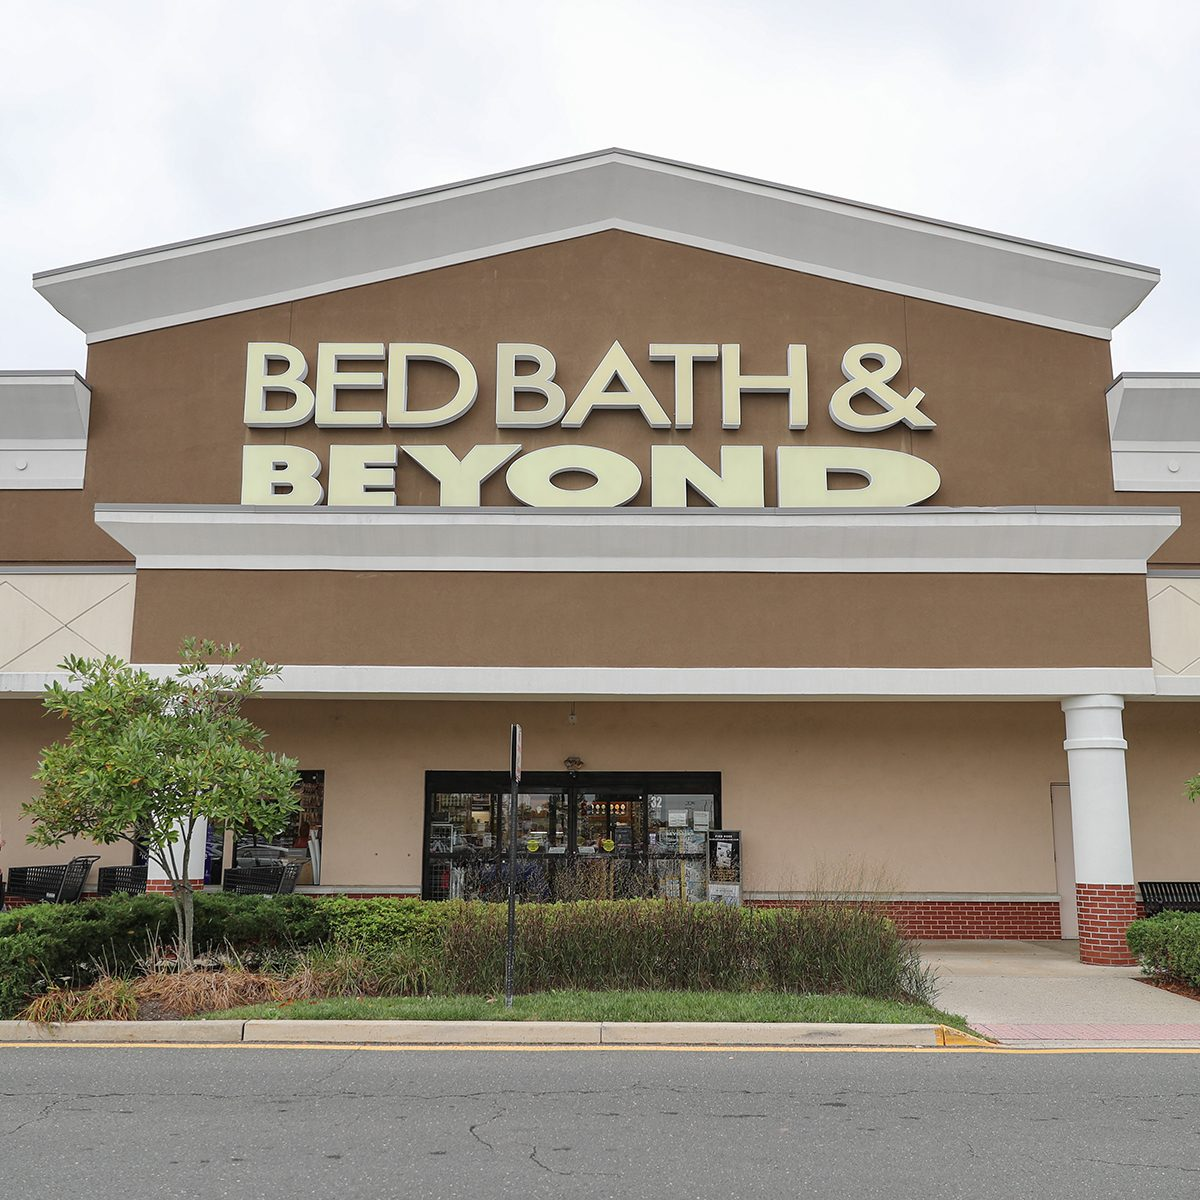 Bed Bath & Beyond Inc. is a chain of domestic retail stores in the US